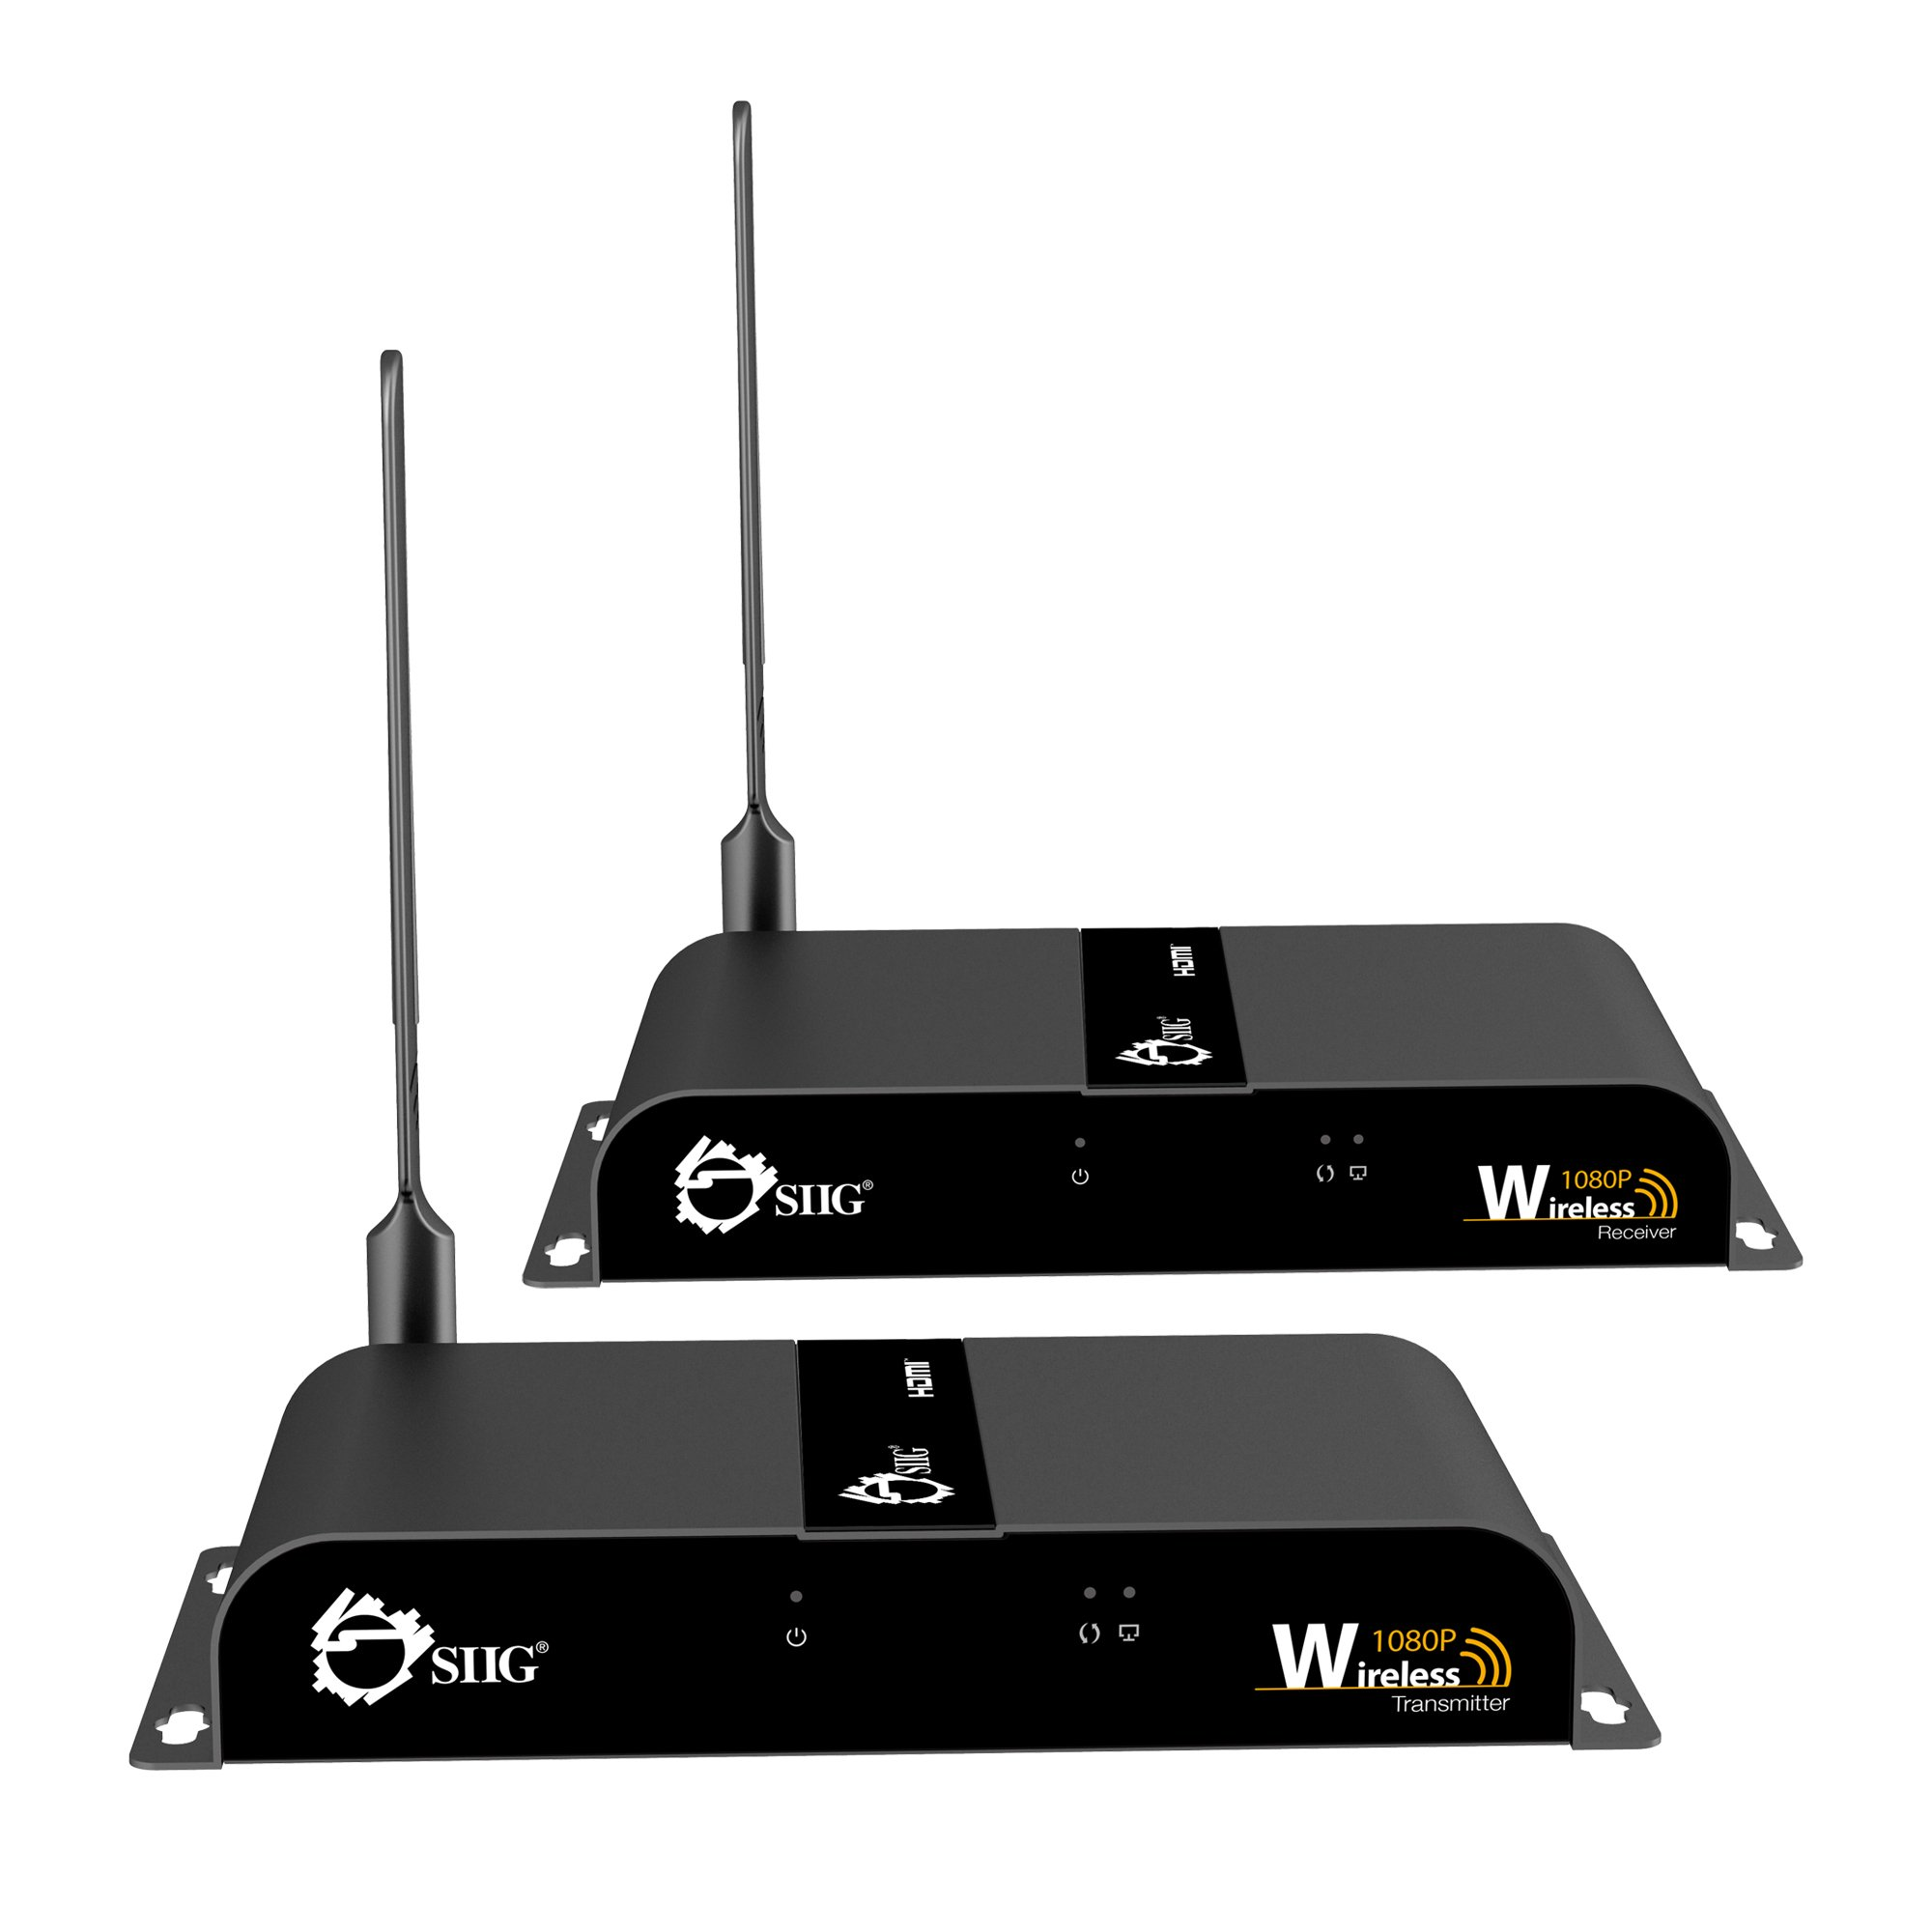 SIIG Wireless Wall-Mountable 1080P HDMI Extender Video Kit - 165 Feet (50 meters) - Version 2.0 With Wi-Fi Extension Antenna by SIIG